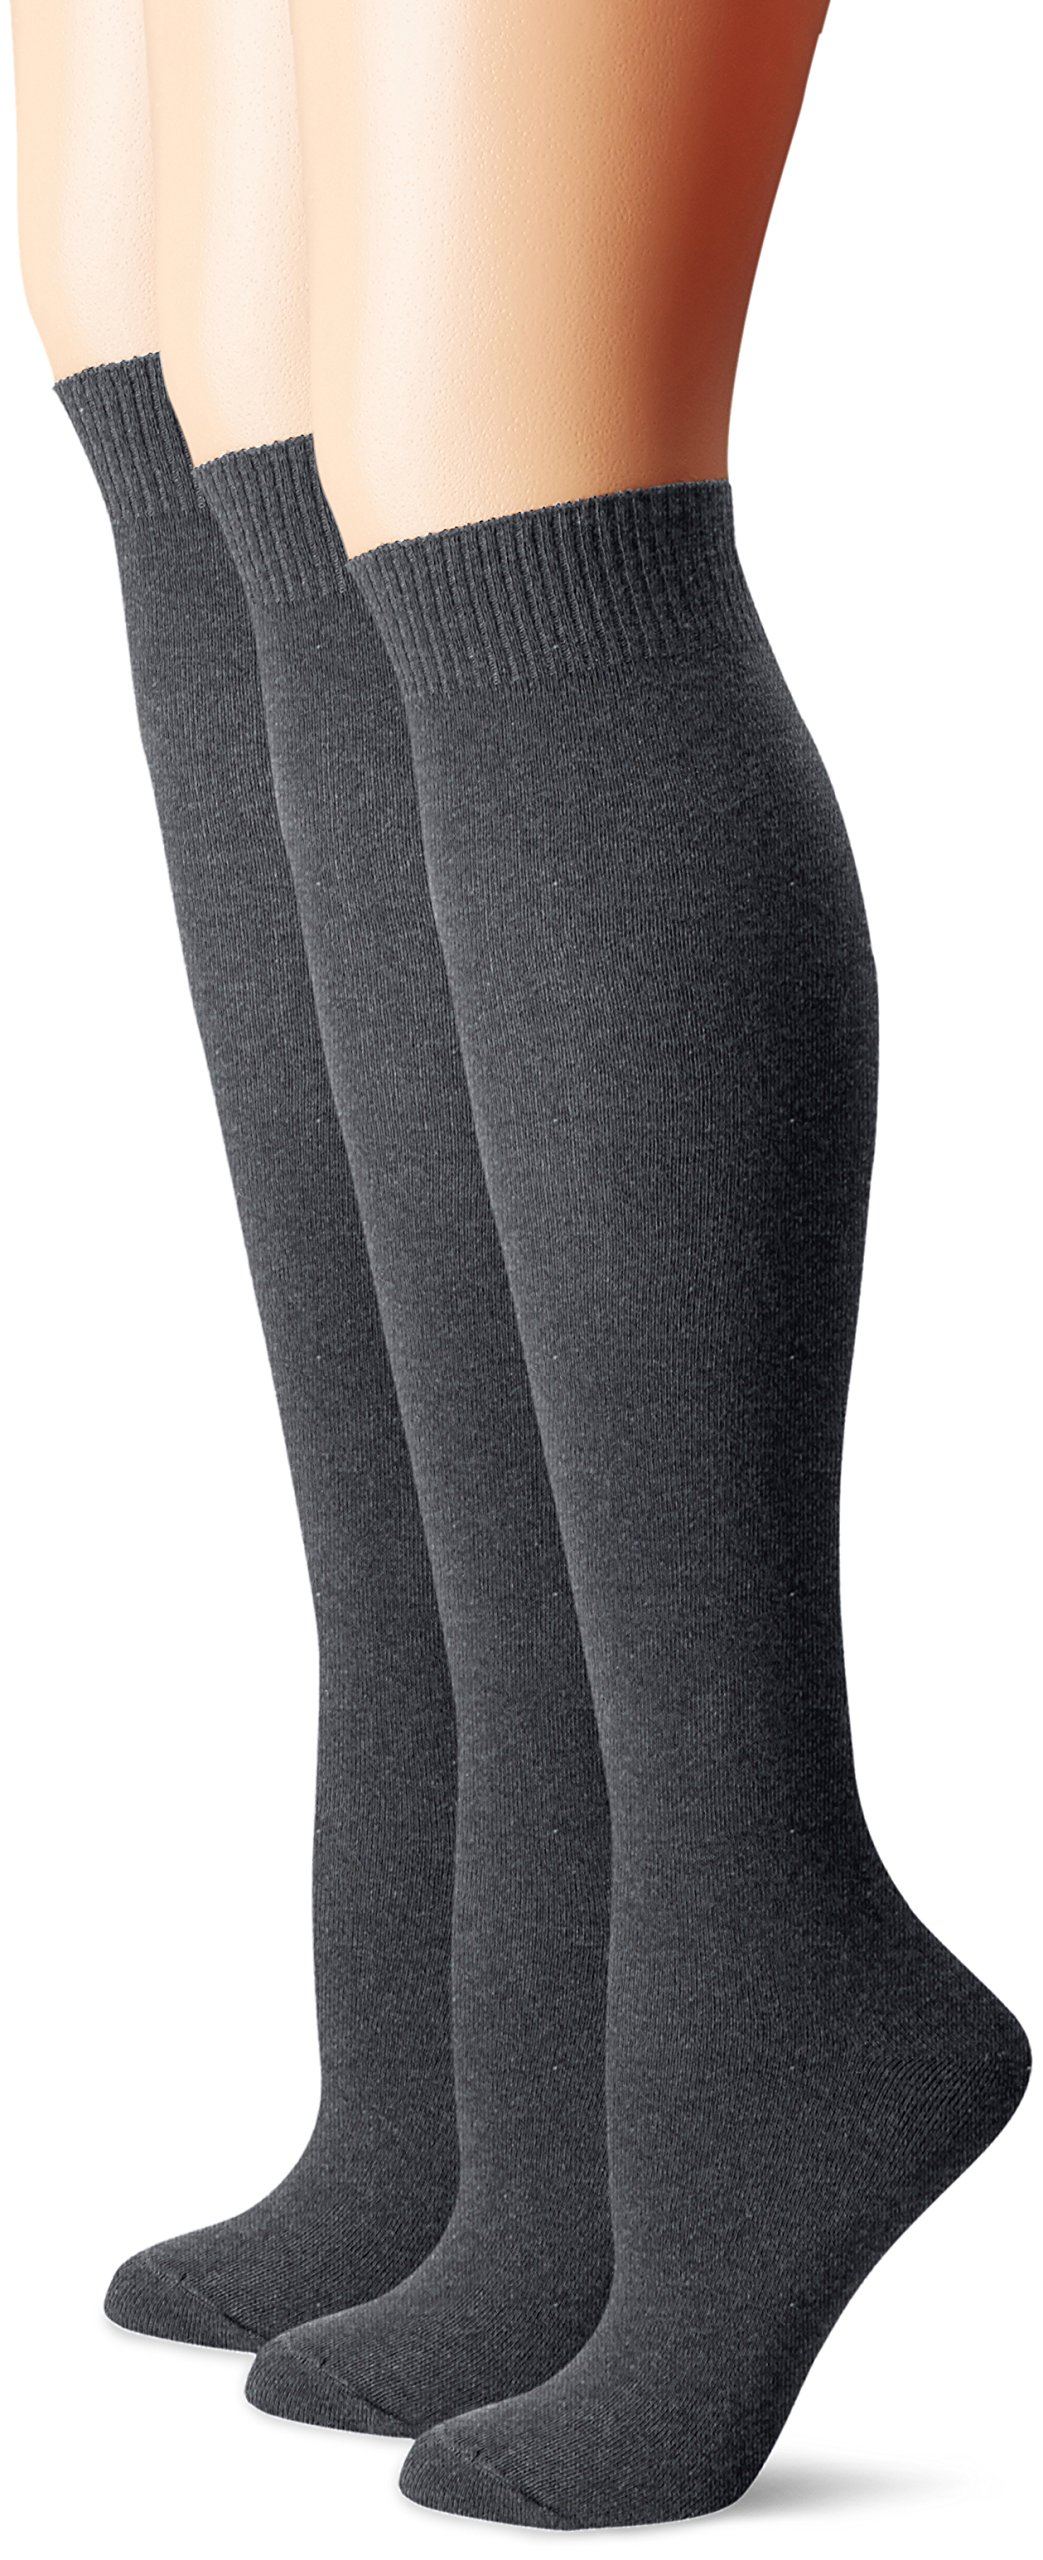 HUE Women's Flat Knit Knee Socks (Pack of 3),Graphite Heather,One Size